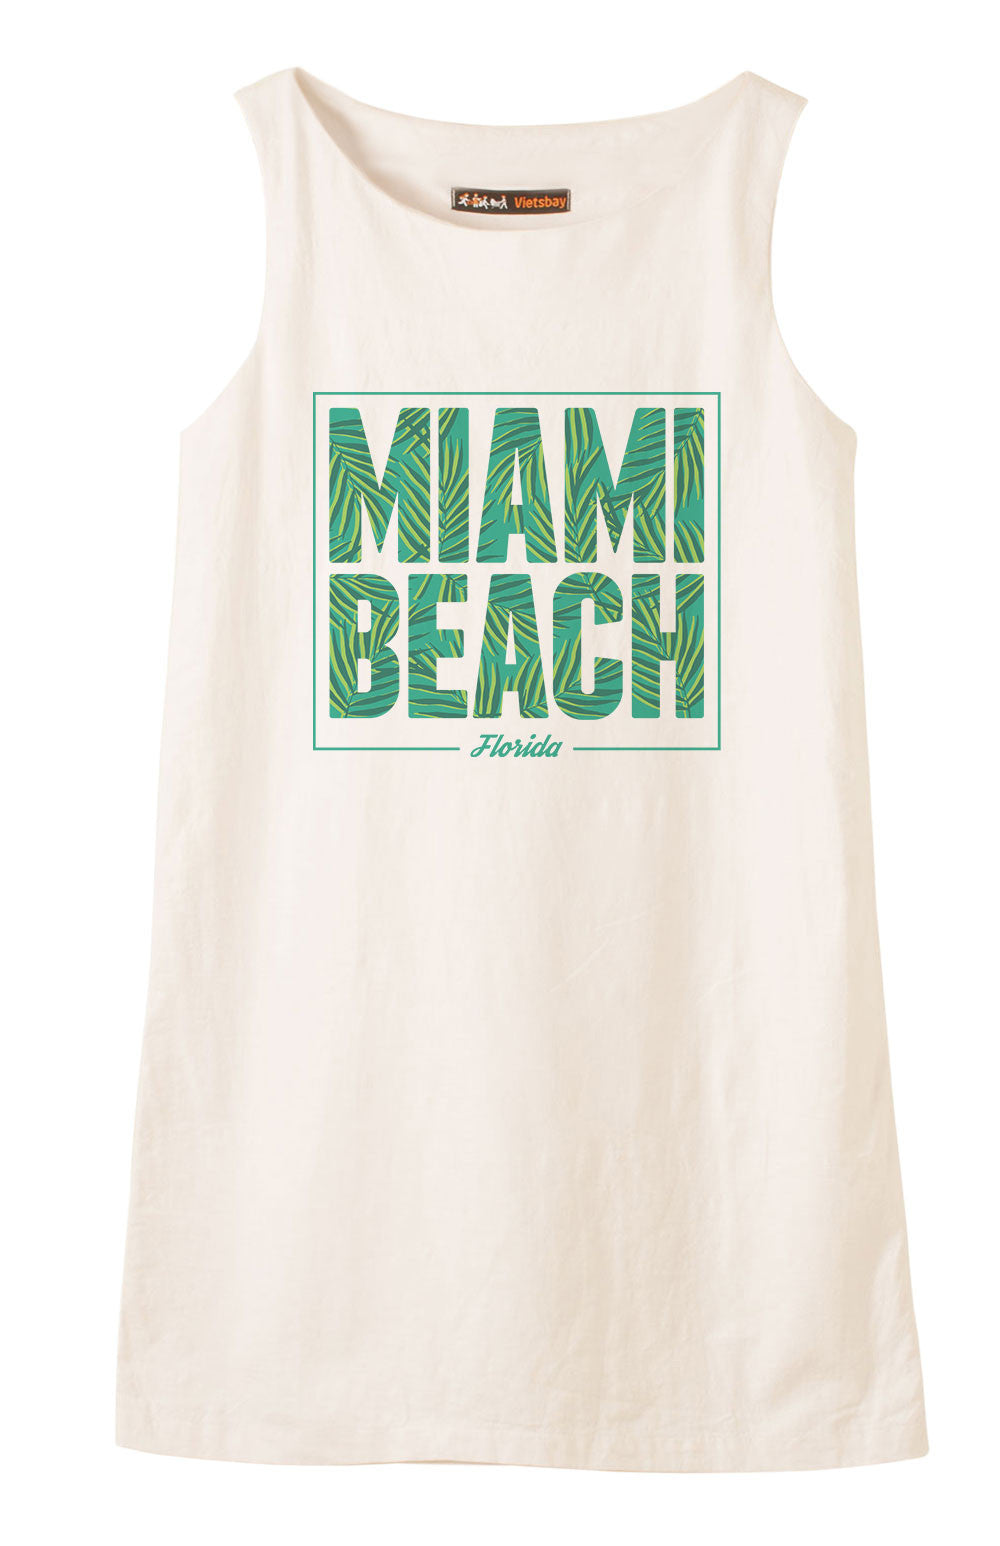 Miami beach Printed Vintage 100% Cotton Linen Mini Shift Dress WDS_01